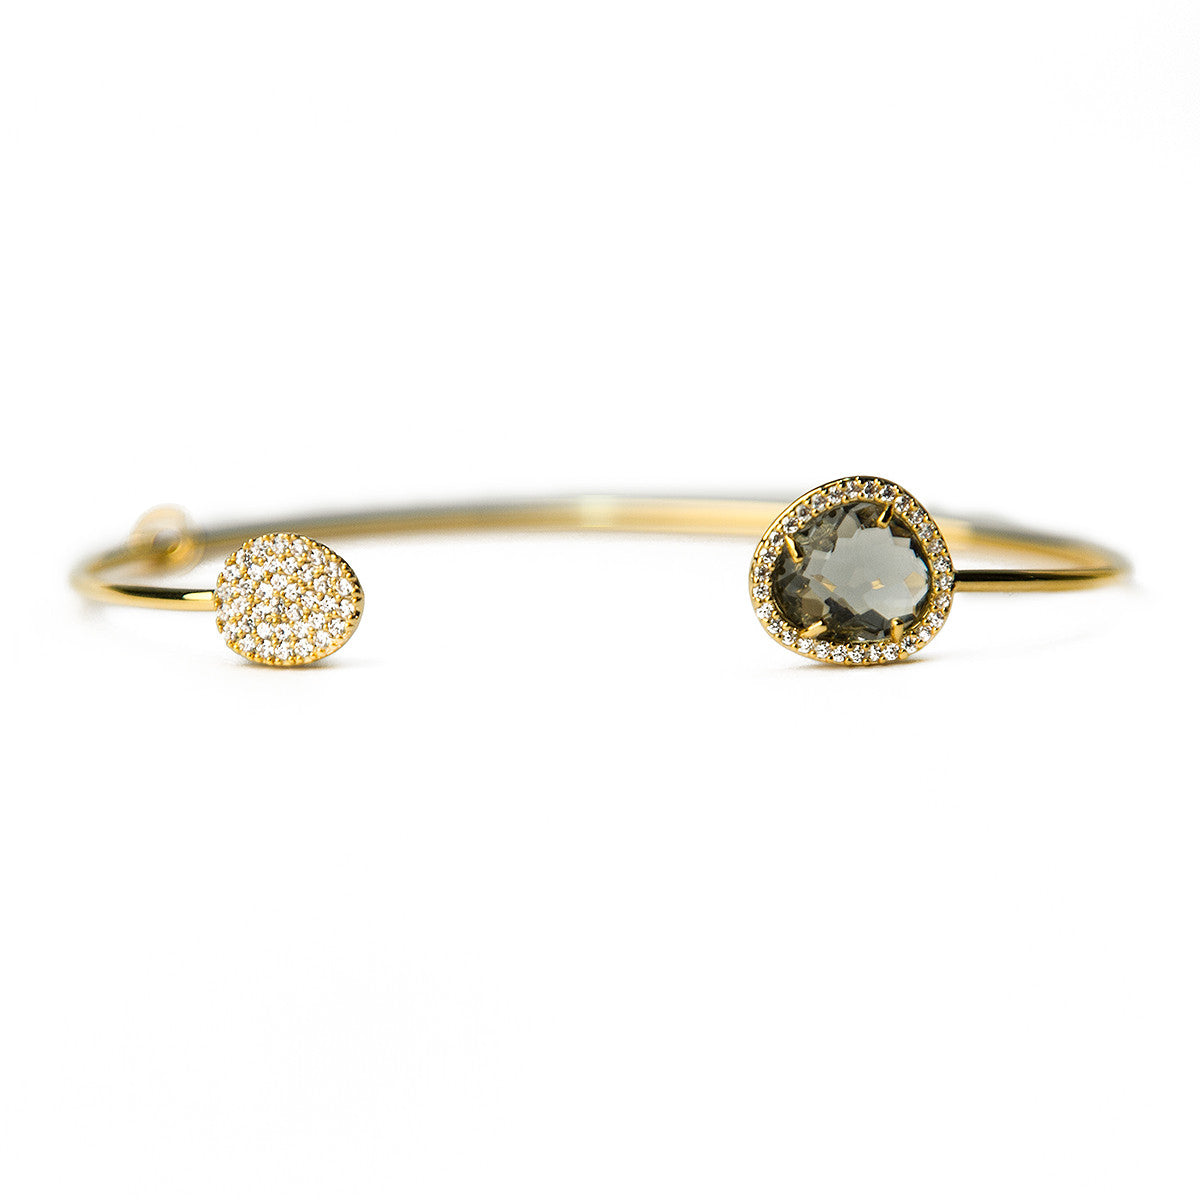 GLASS WITH PAVE CUFF BRACELET